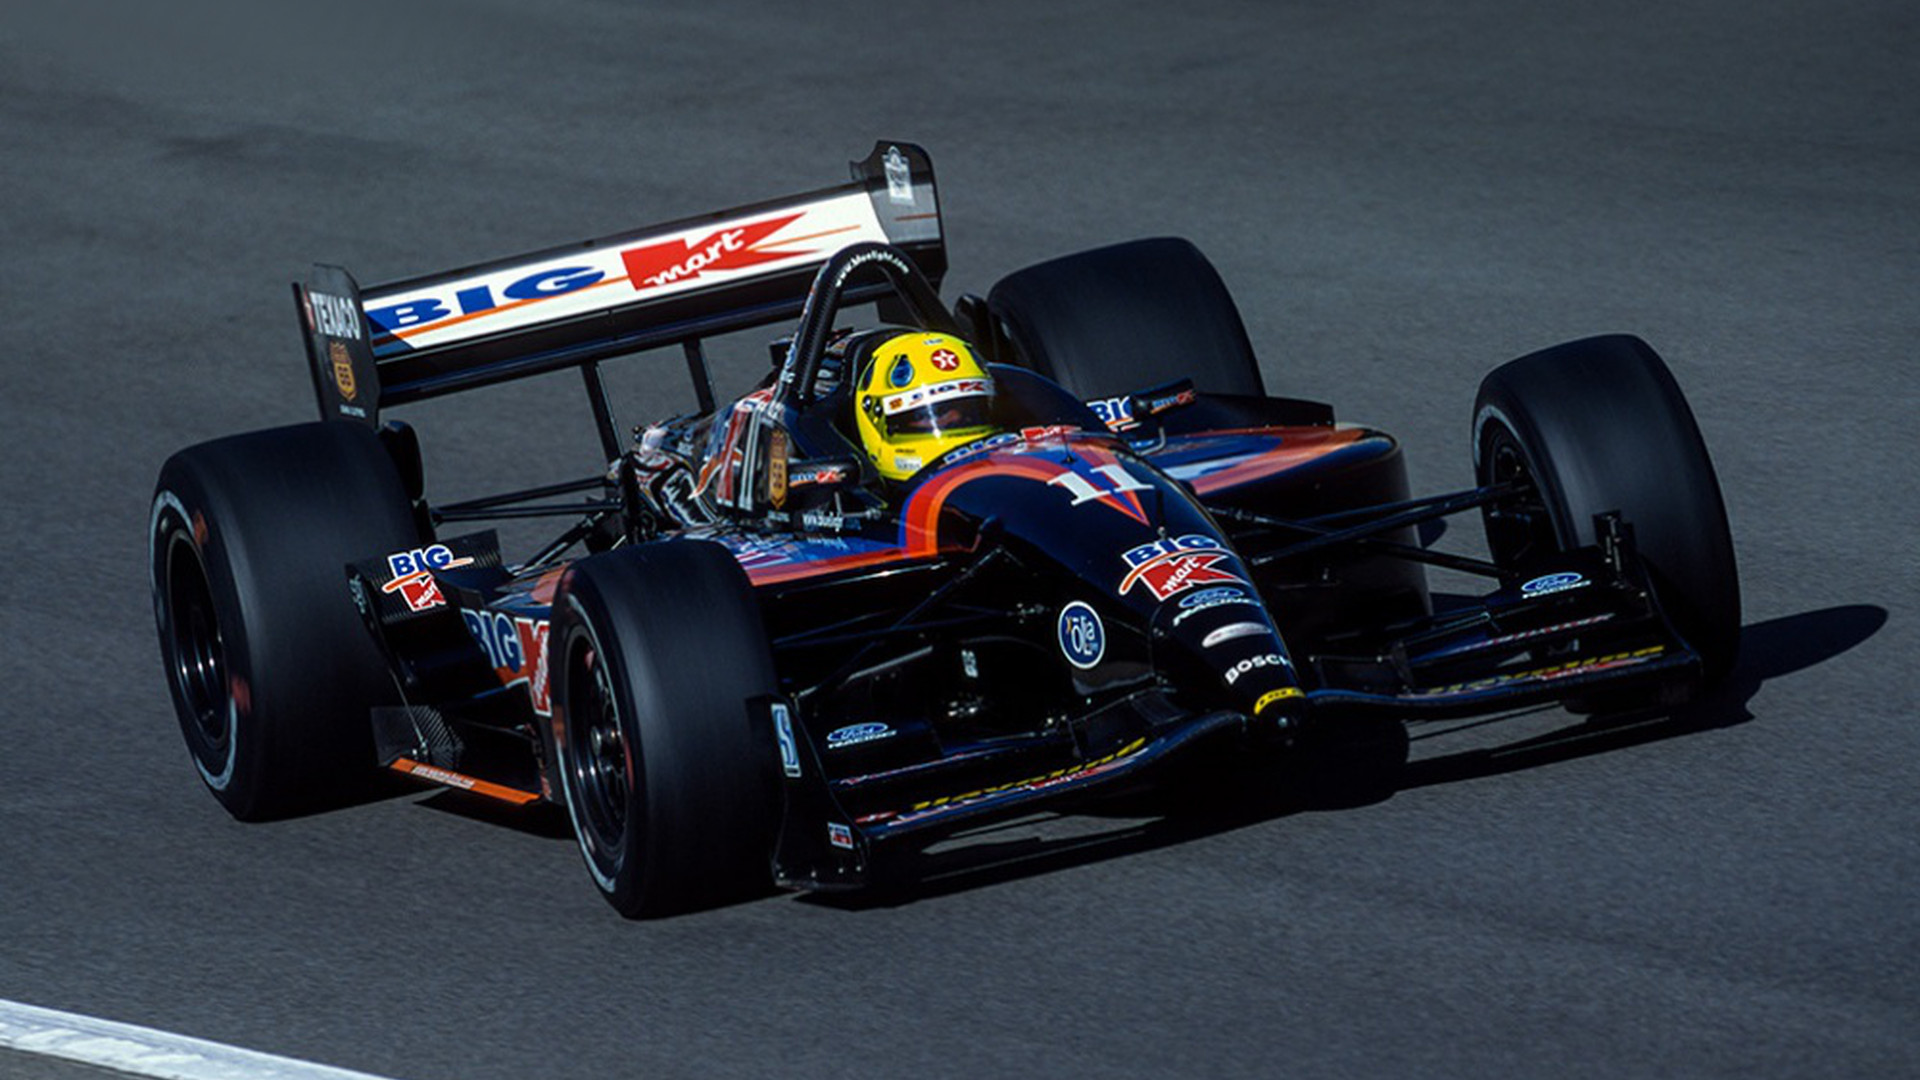 Newman Haas Indycar Featuring Nigel Mansell Details